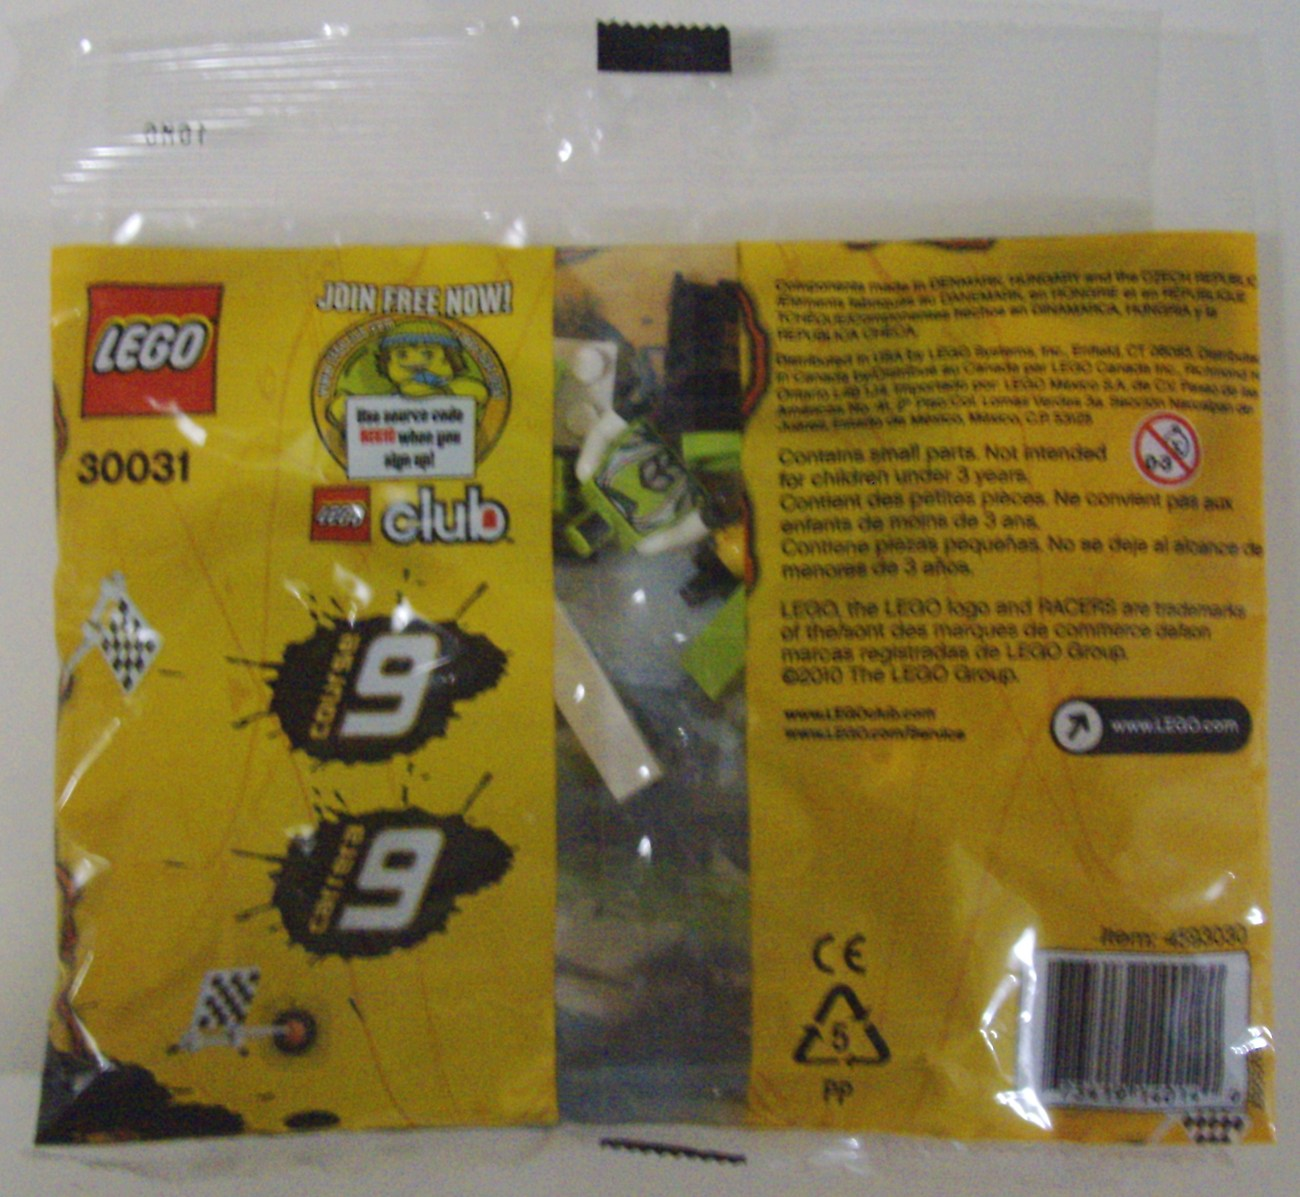 LEGO World Racers Race 9 set # 30031 w/ 27 pieces and 1 minifigure - New